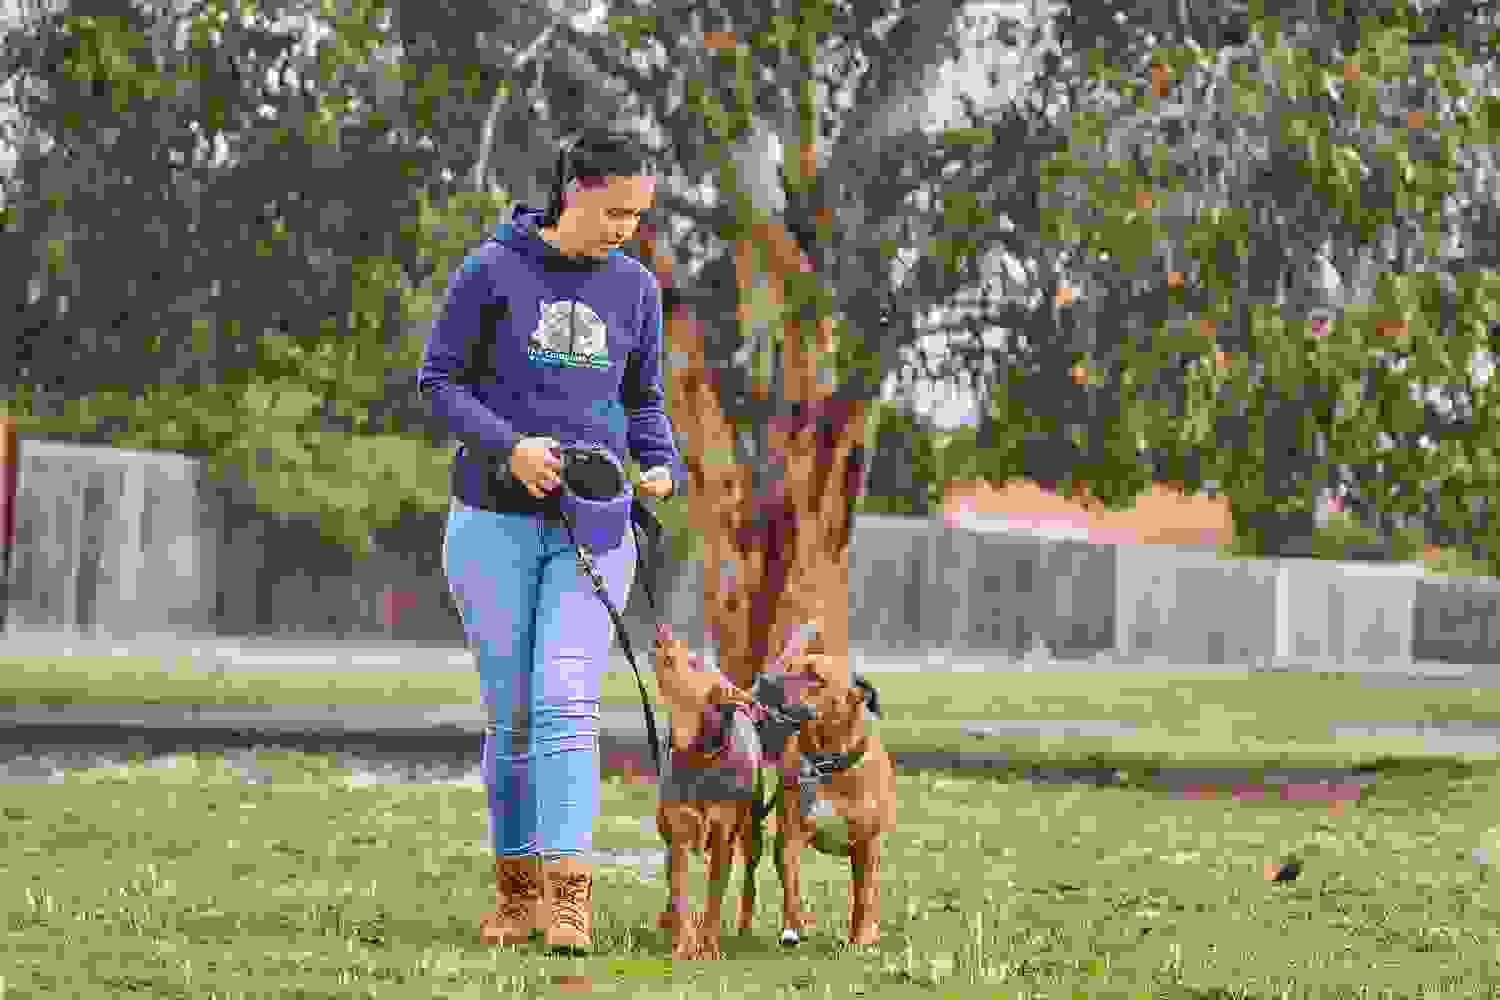 Dog training, loose lead walking, Lenyx & Zelda, obedience class